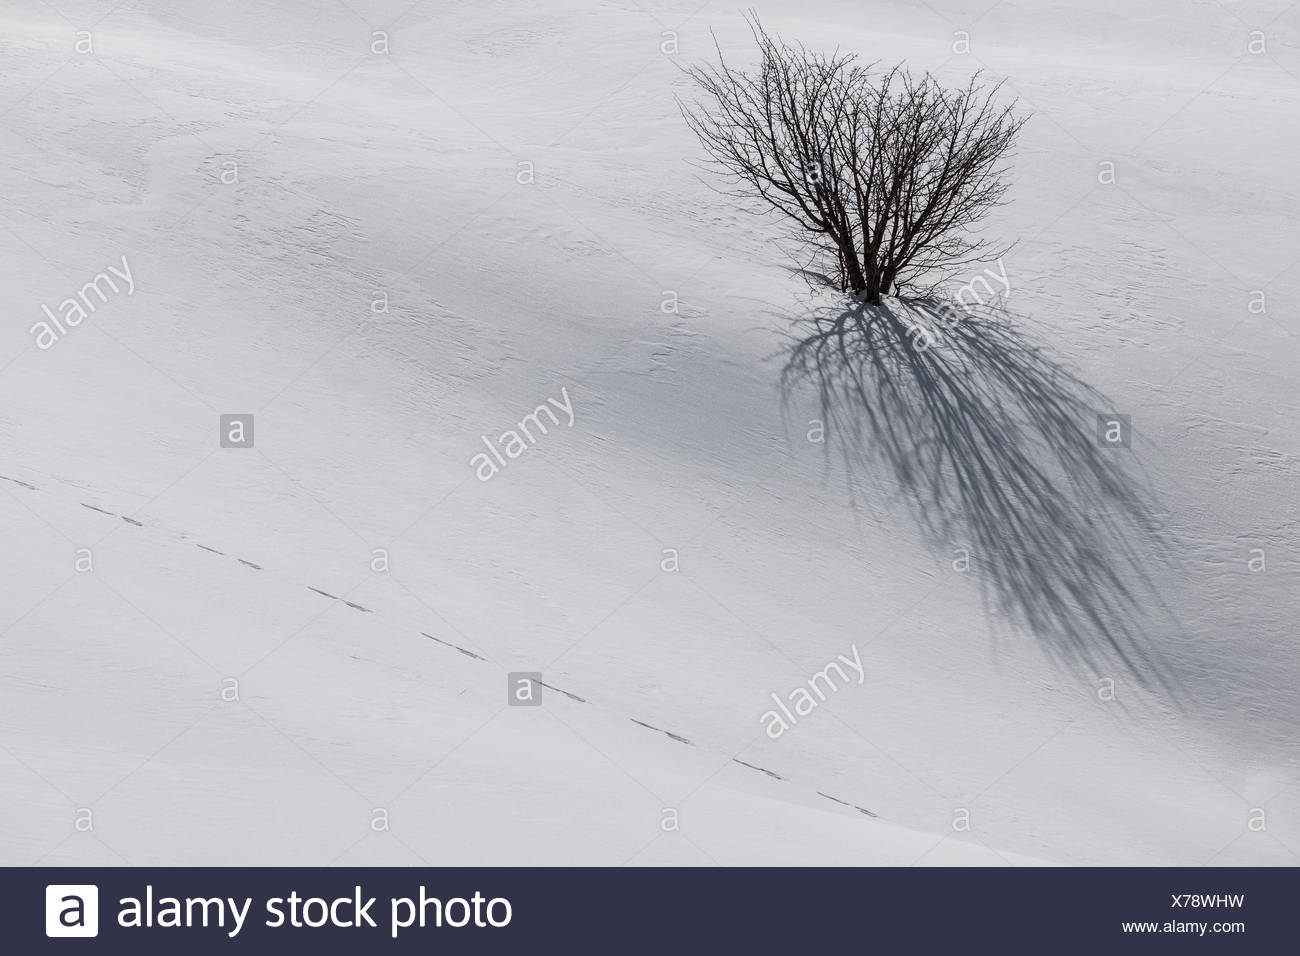 Ligurian Apennines, Piedmont, Italy. A lone tree submerged by snow fall during the winter season. - Stock Image